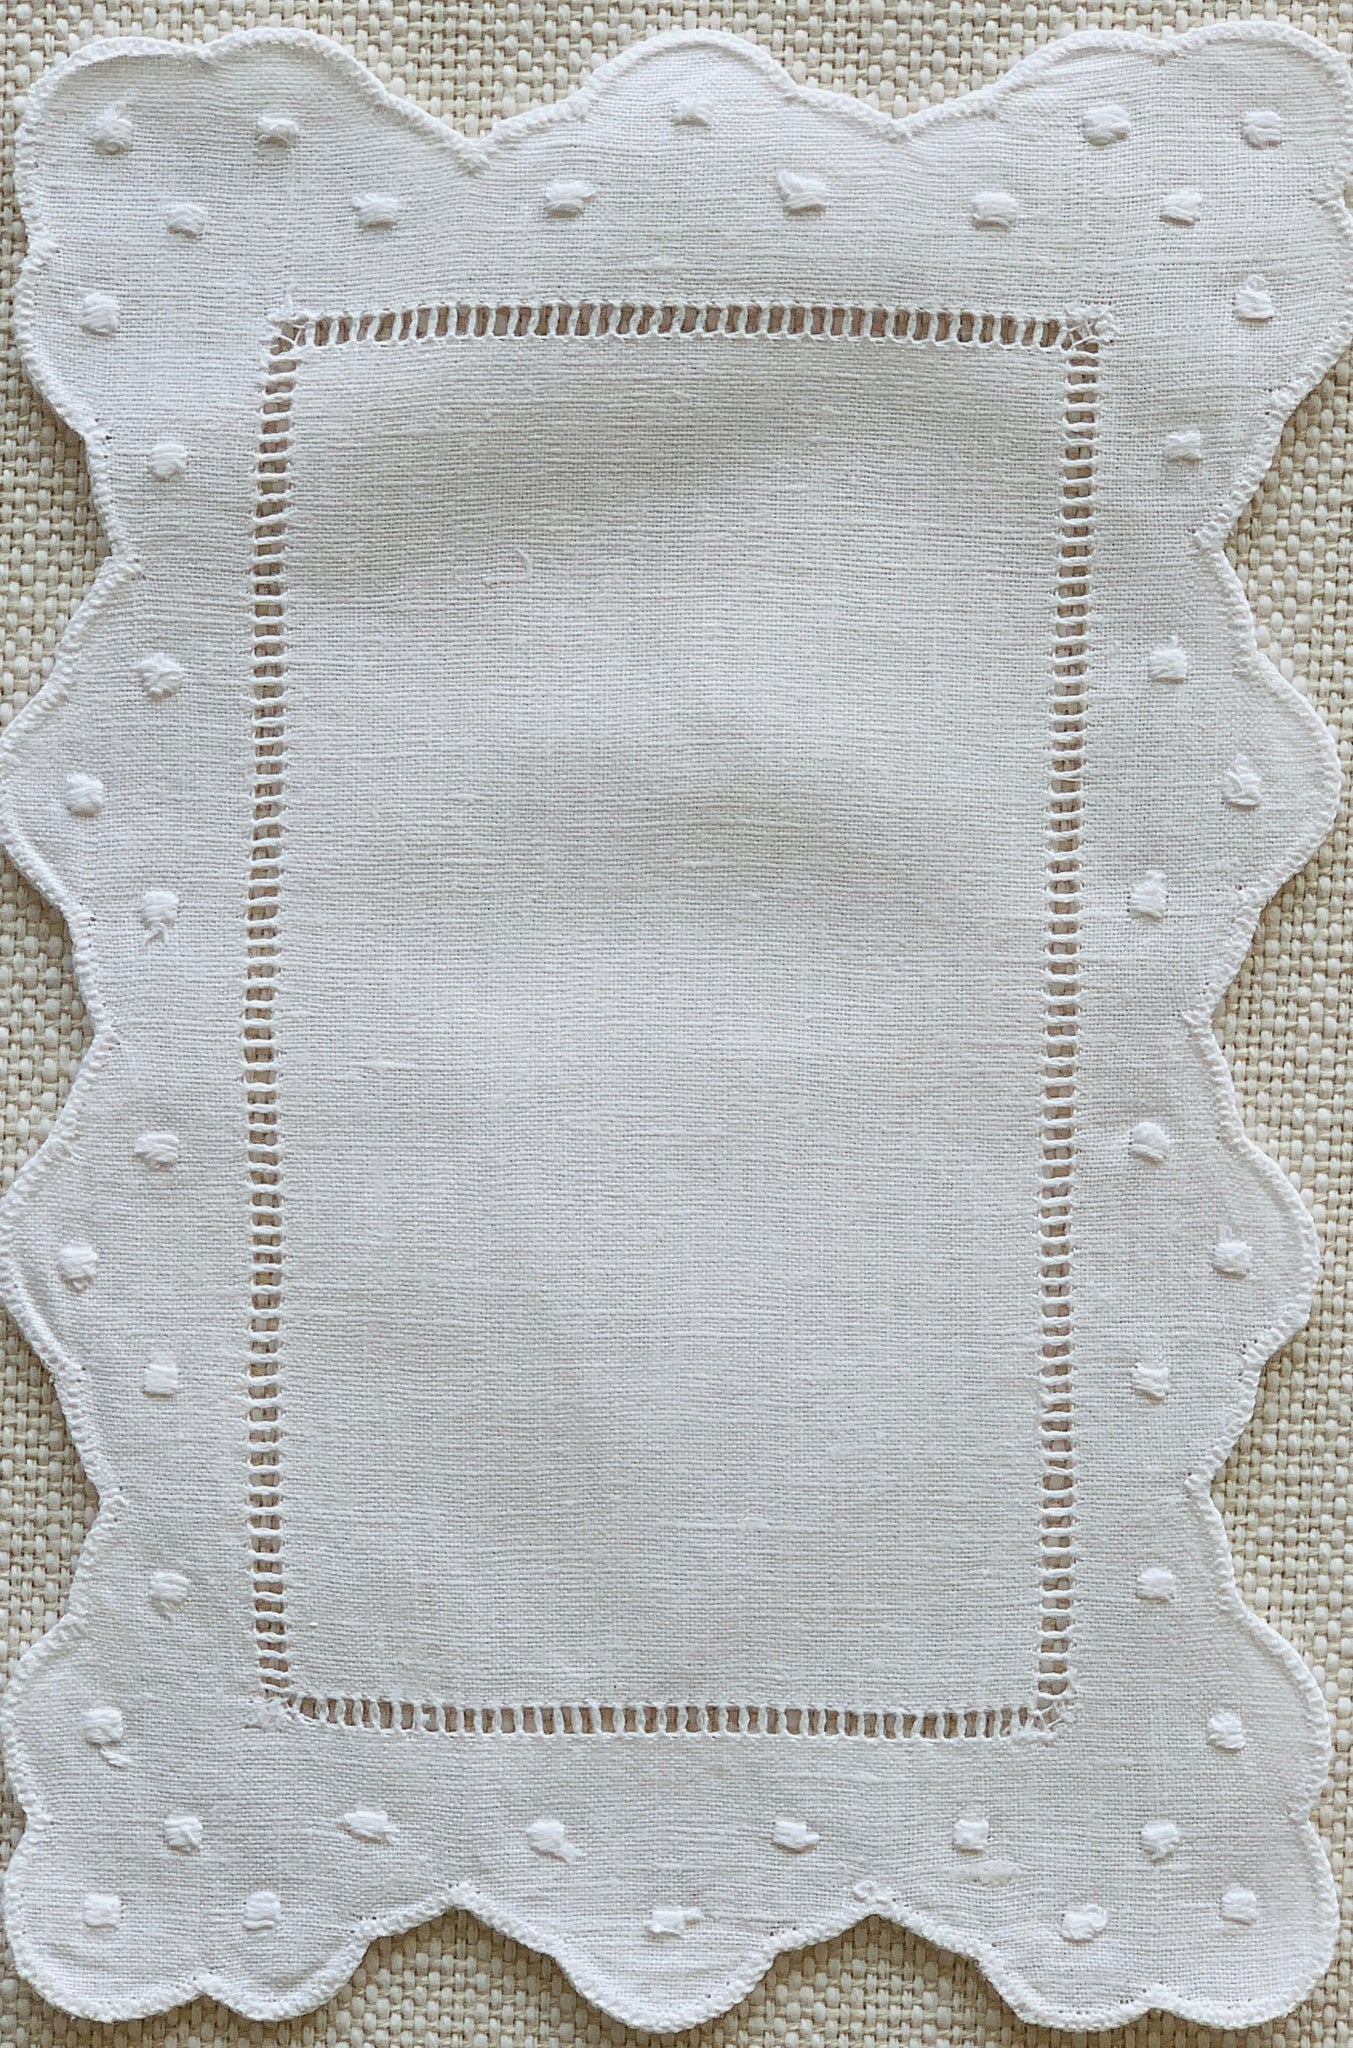 White Scalloped and Dot Cocktail Napkin